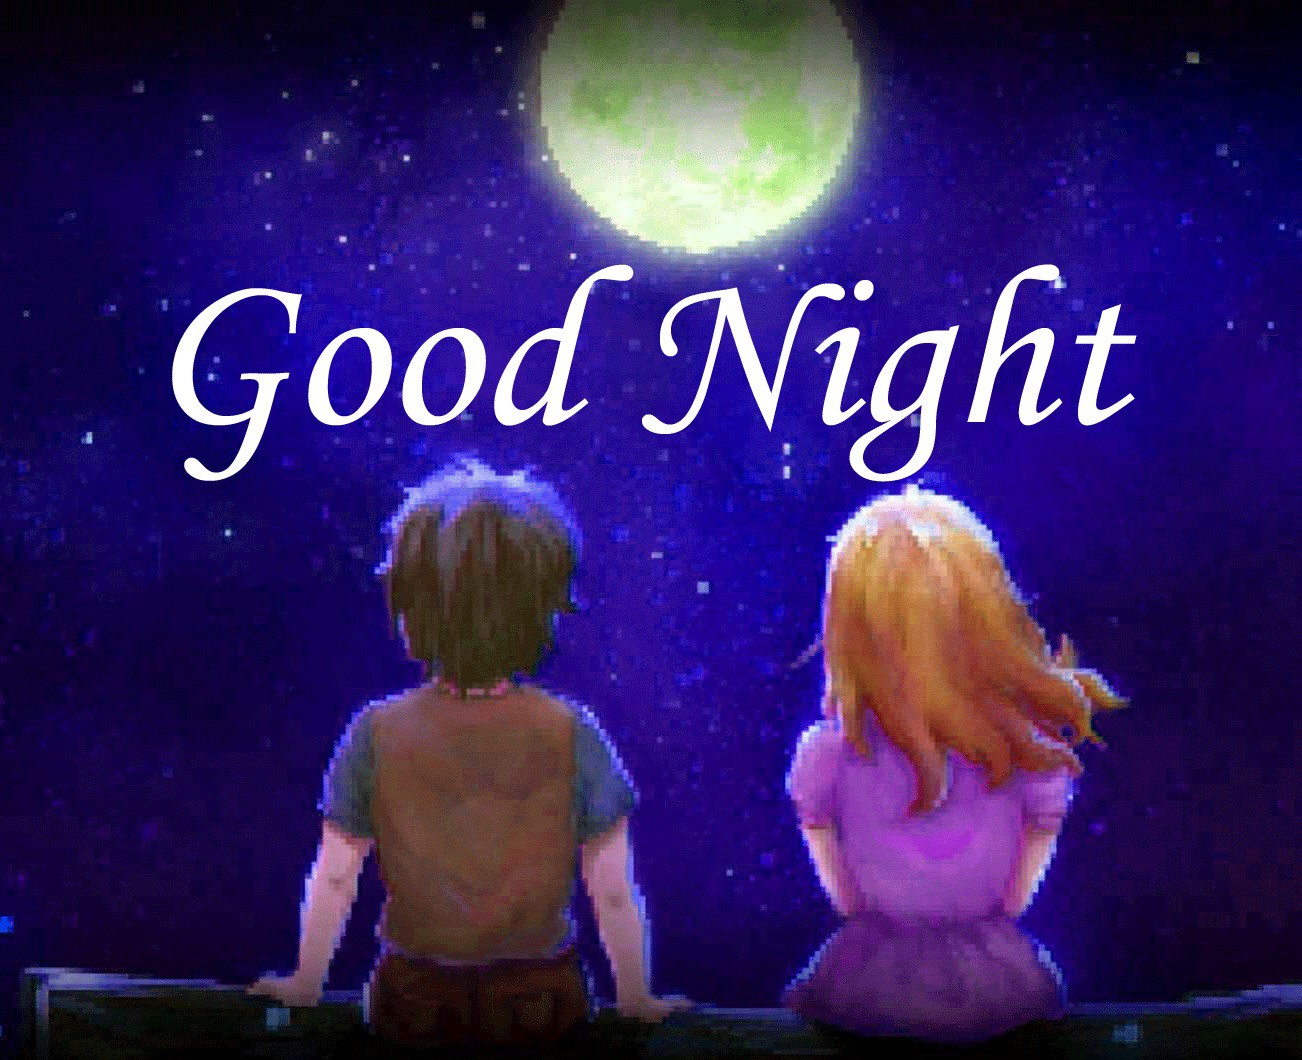 Good night image with girl and boy under moon